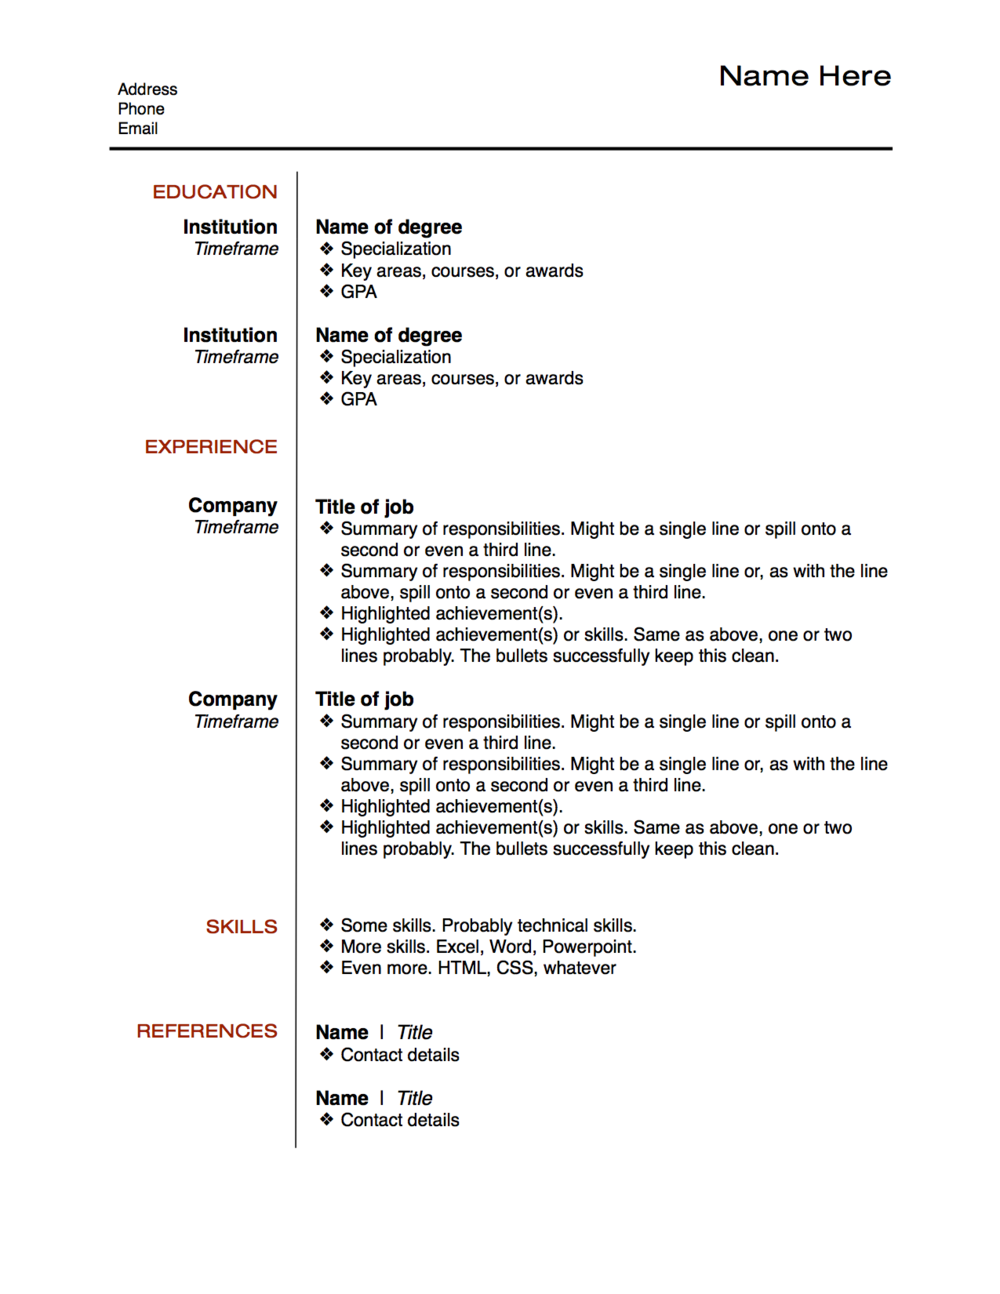 Resume Layout Example.png  Whats A Good Objective To Put On A Resume